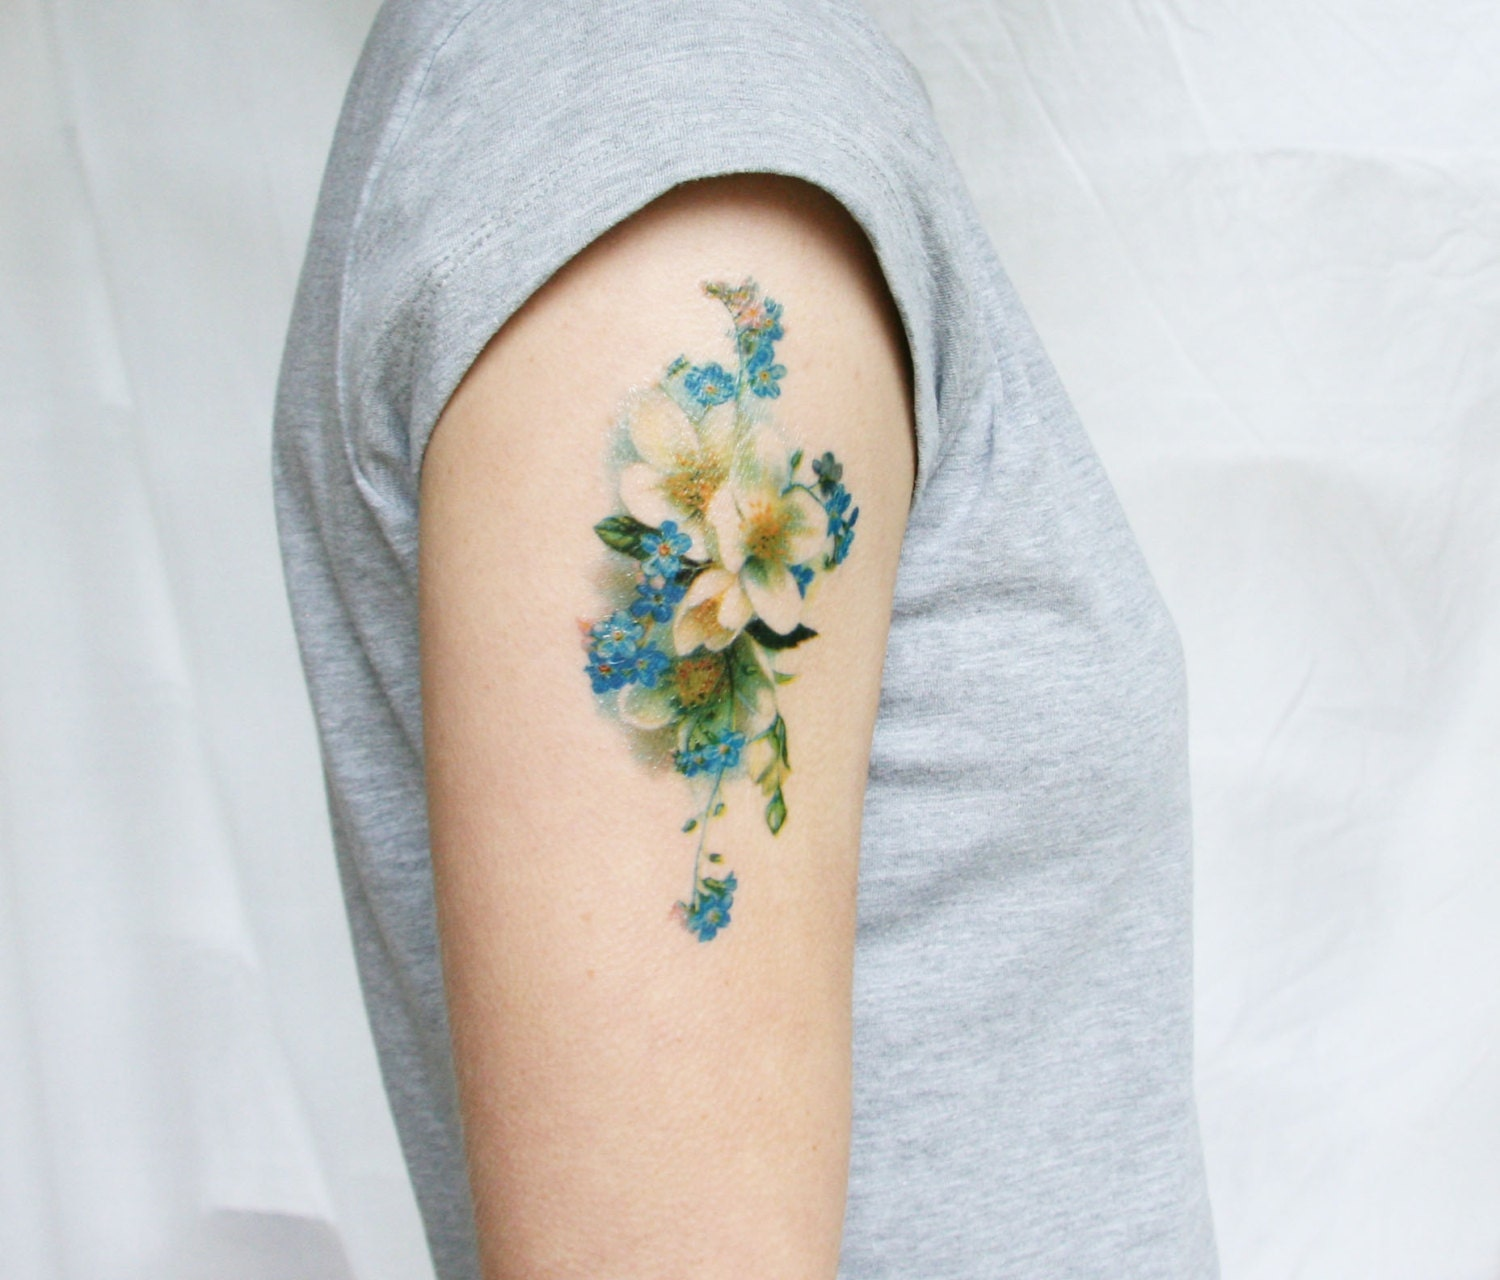 Floral Tattoo Images Designs: Fake Tattoo Floral Tattoo Flower Tattoo Blue Flower